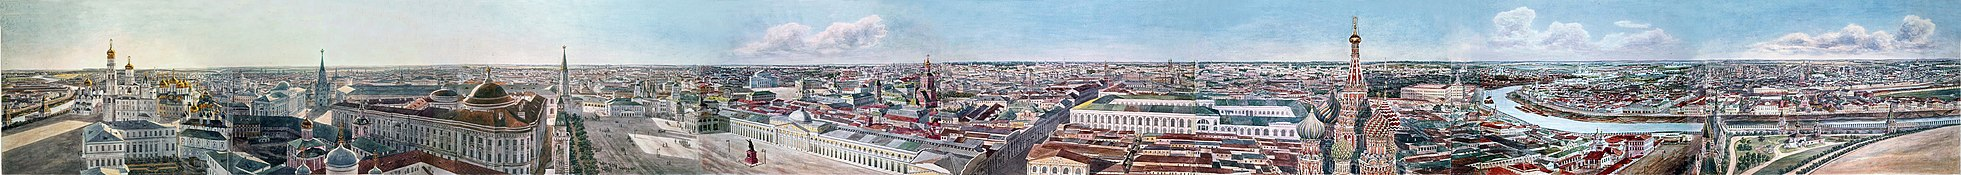 Panorama van Moskou in 1819-1823